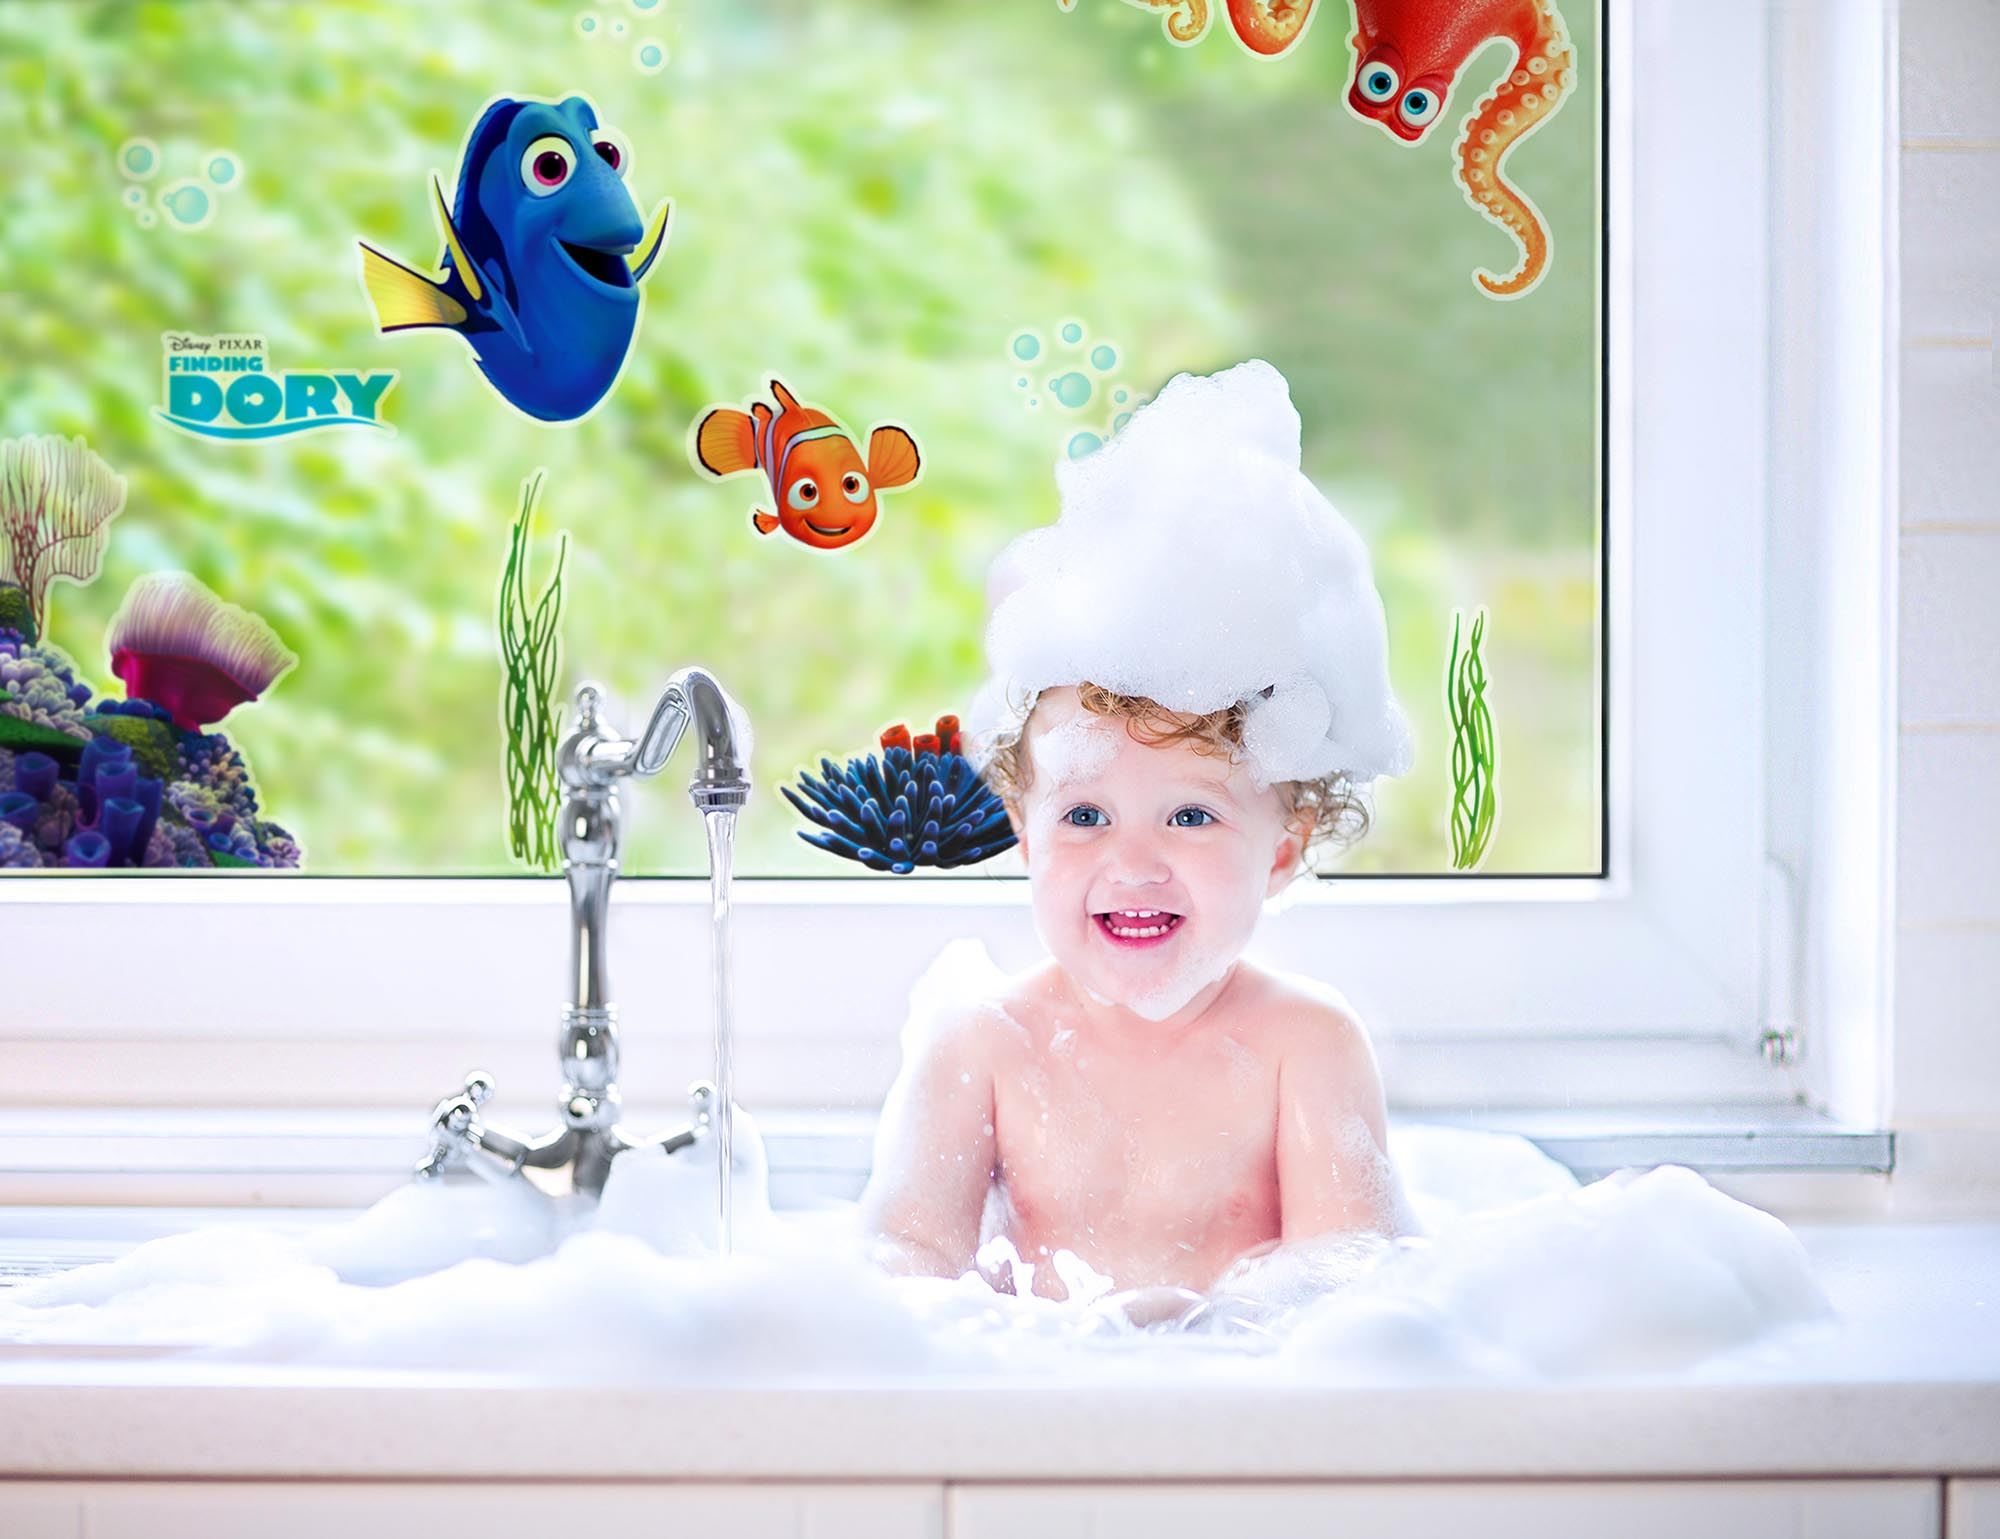 laughing baby girl in kitchen sink full water and foam